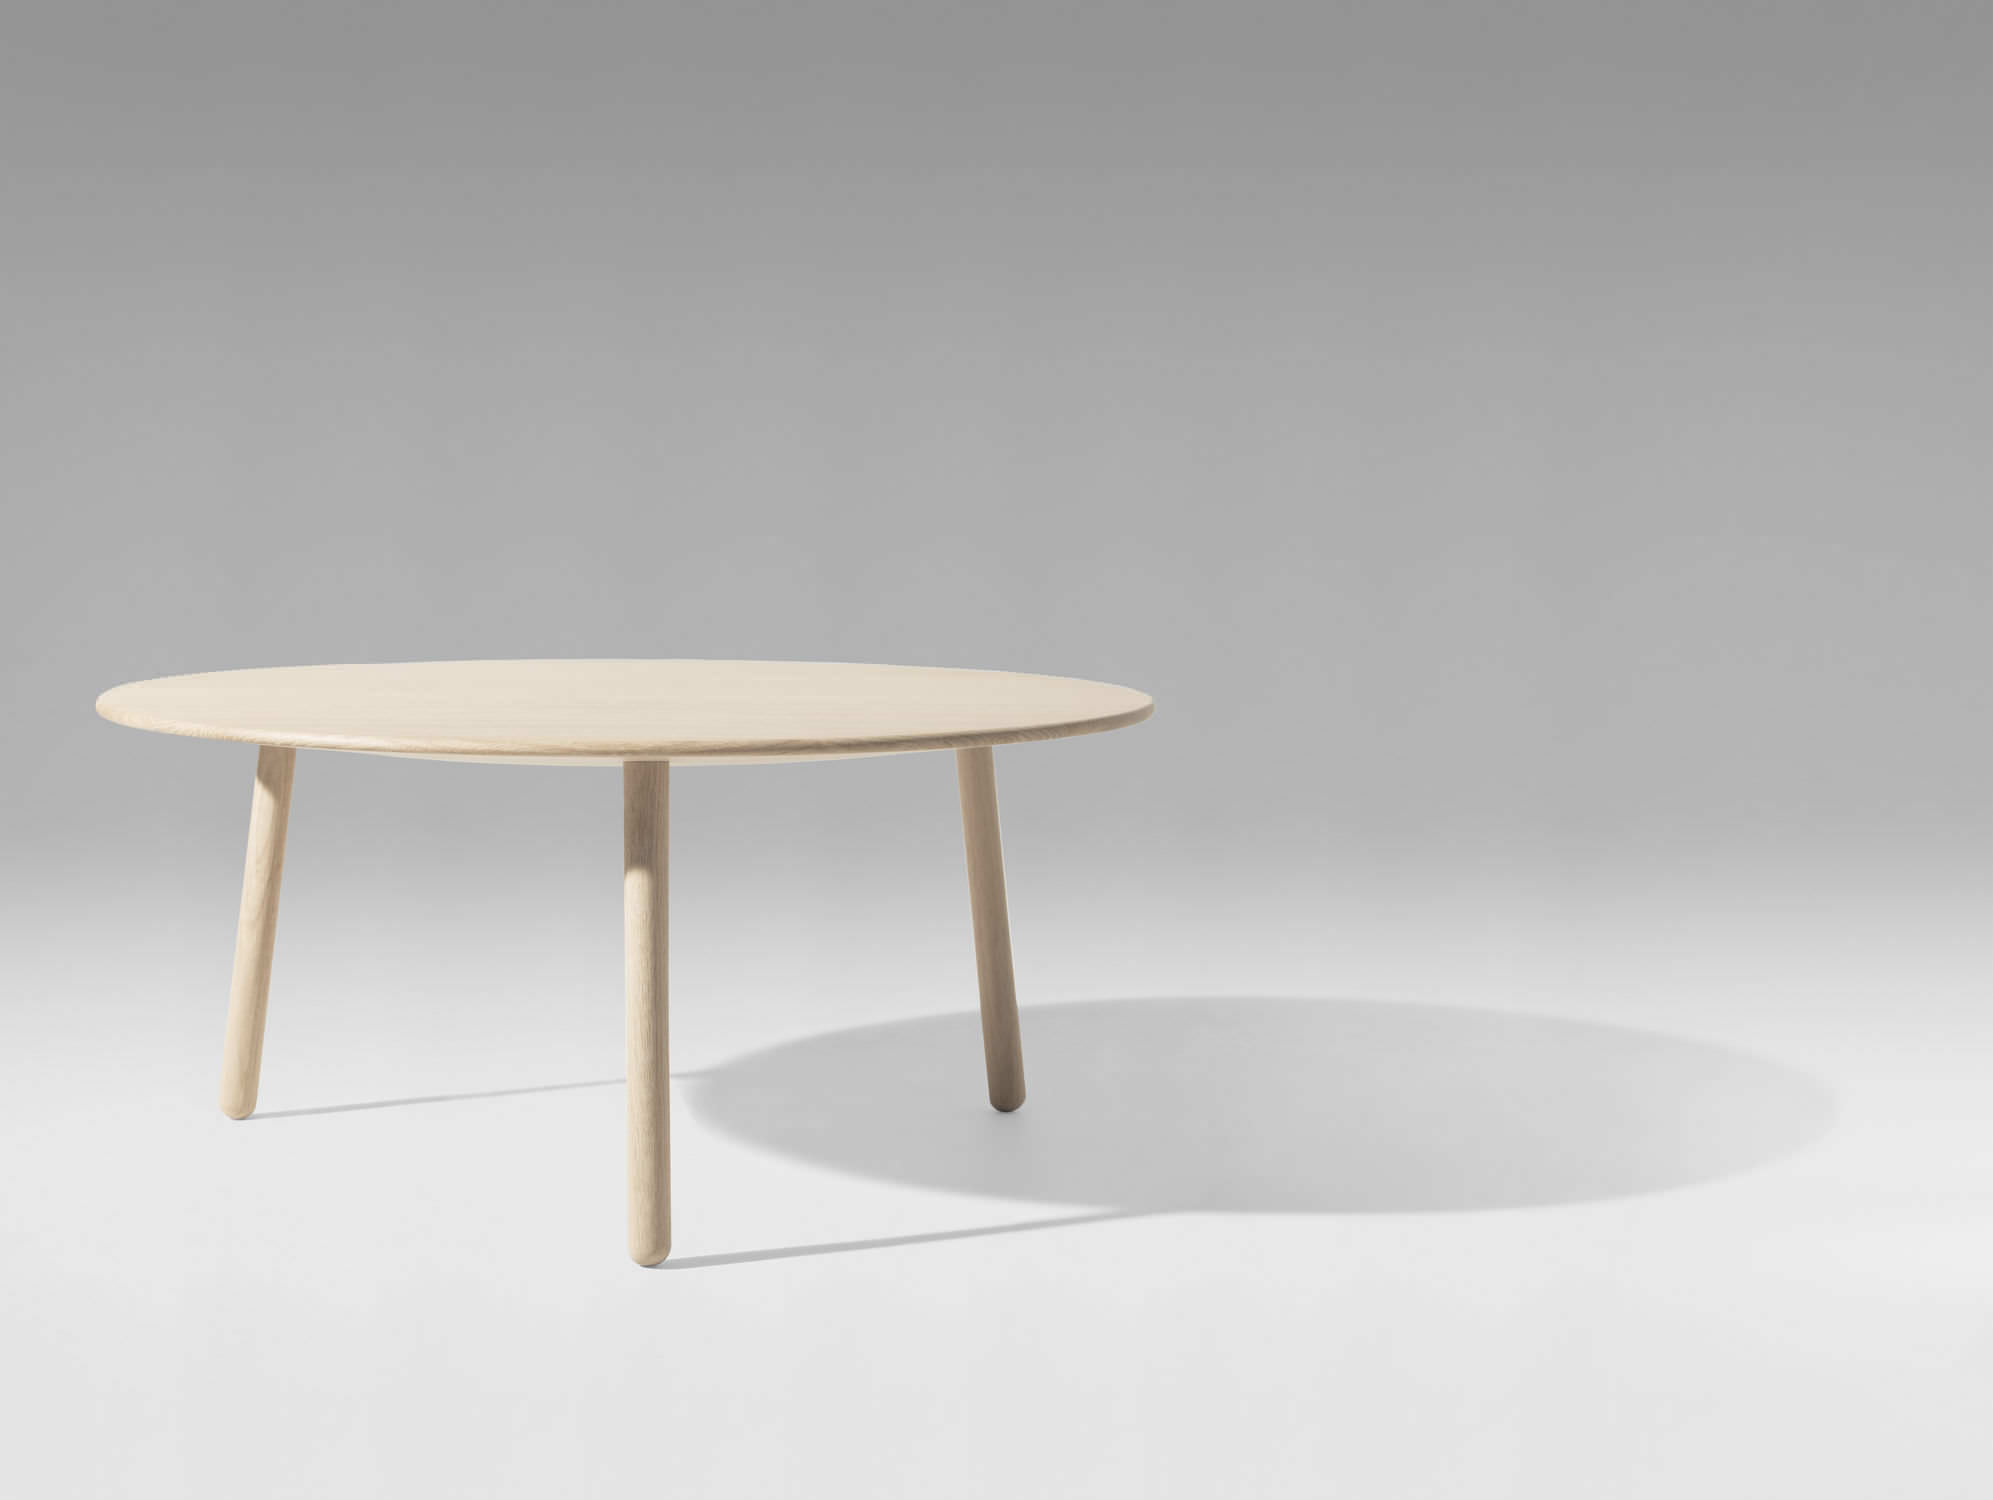 ... Contemporary Coffee Table / Oak / Ash / Round KNOCK ON WOOD By Peter  Barreth Versus ...